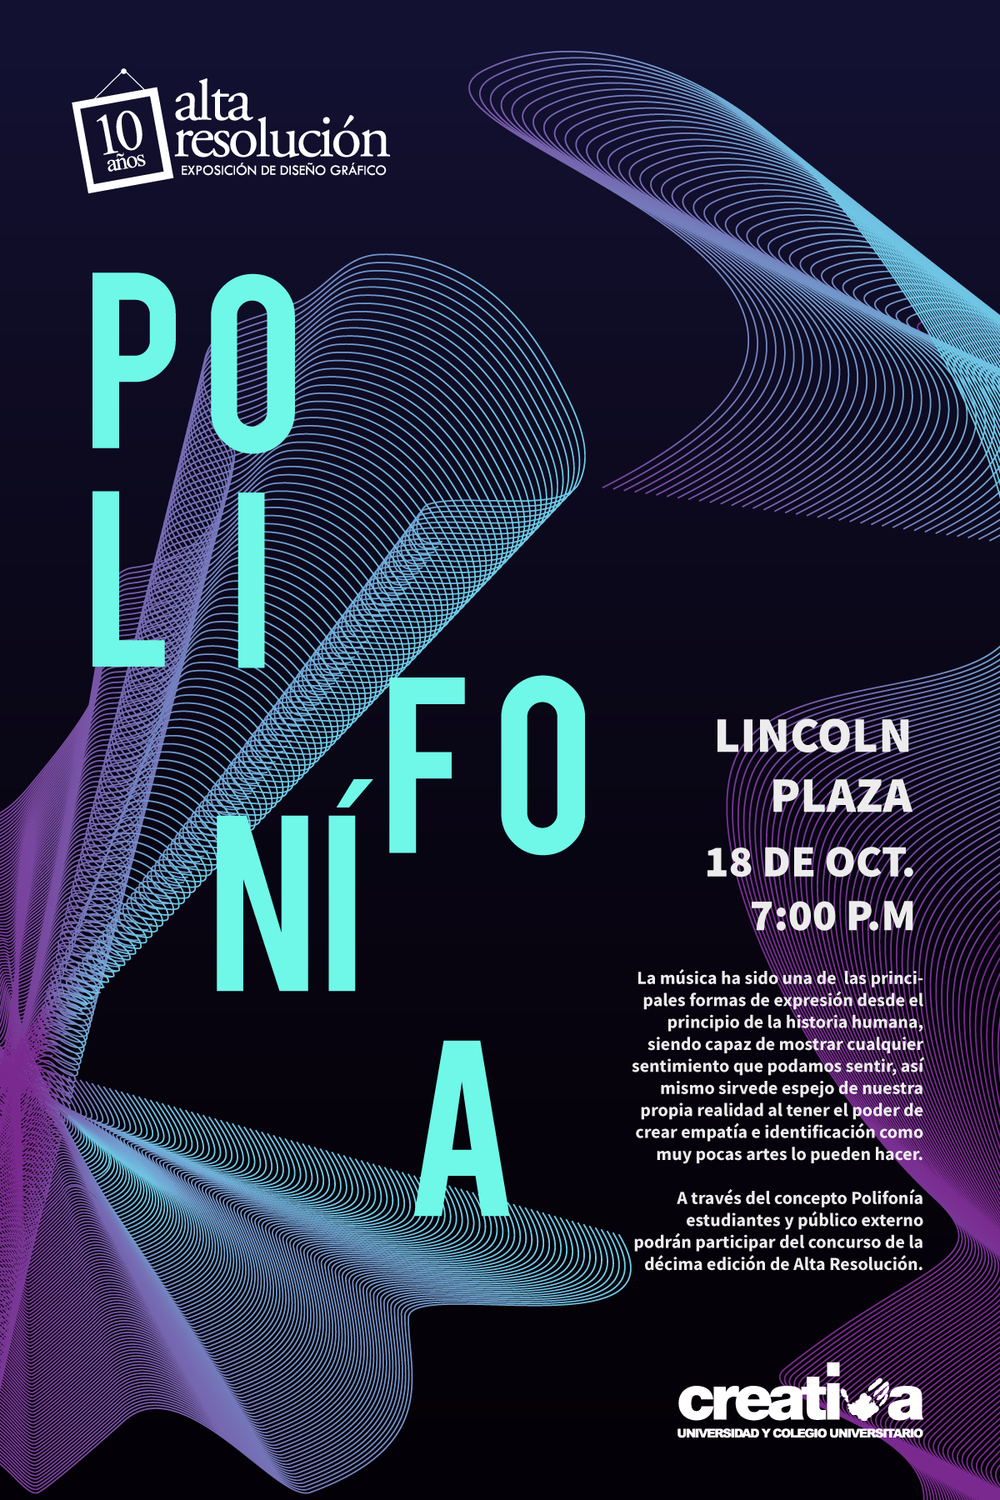 Post-FB-Polifonia (3).png